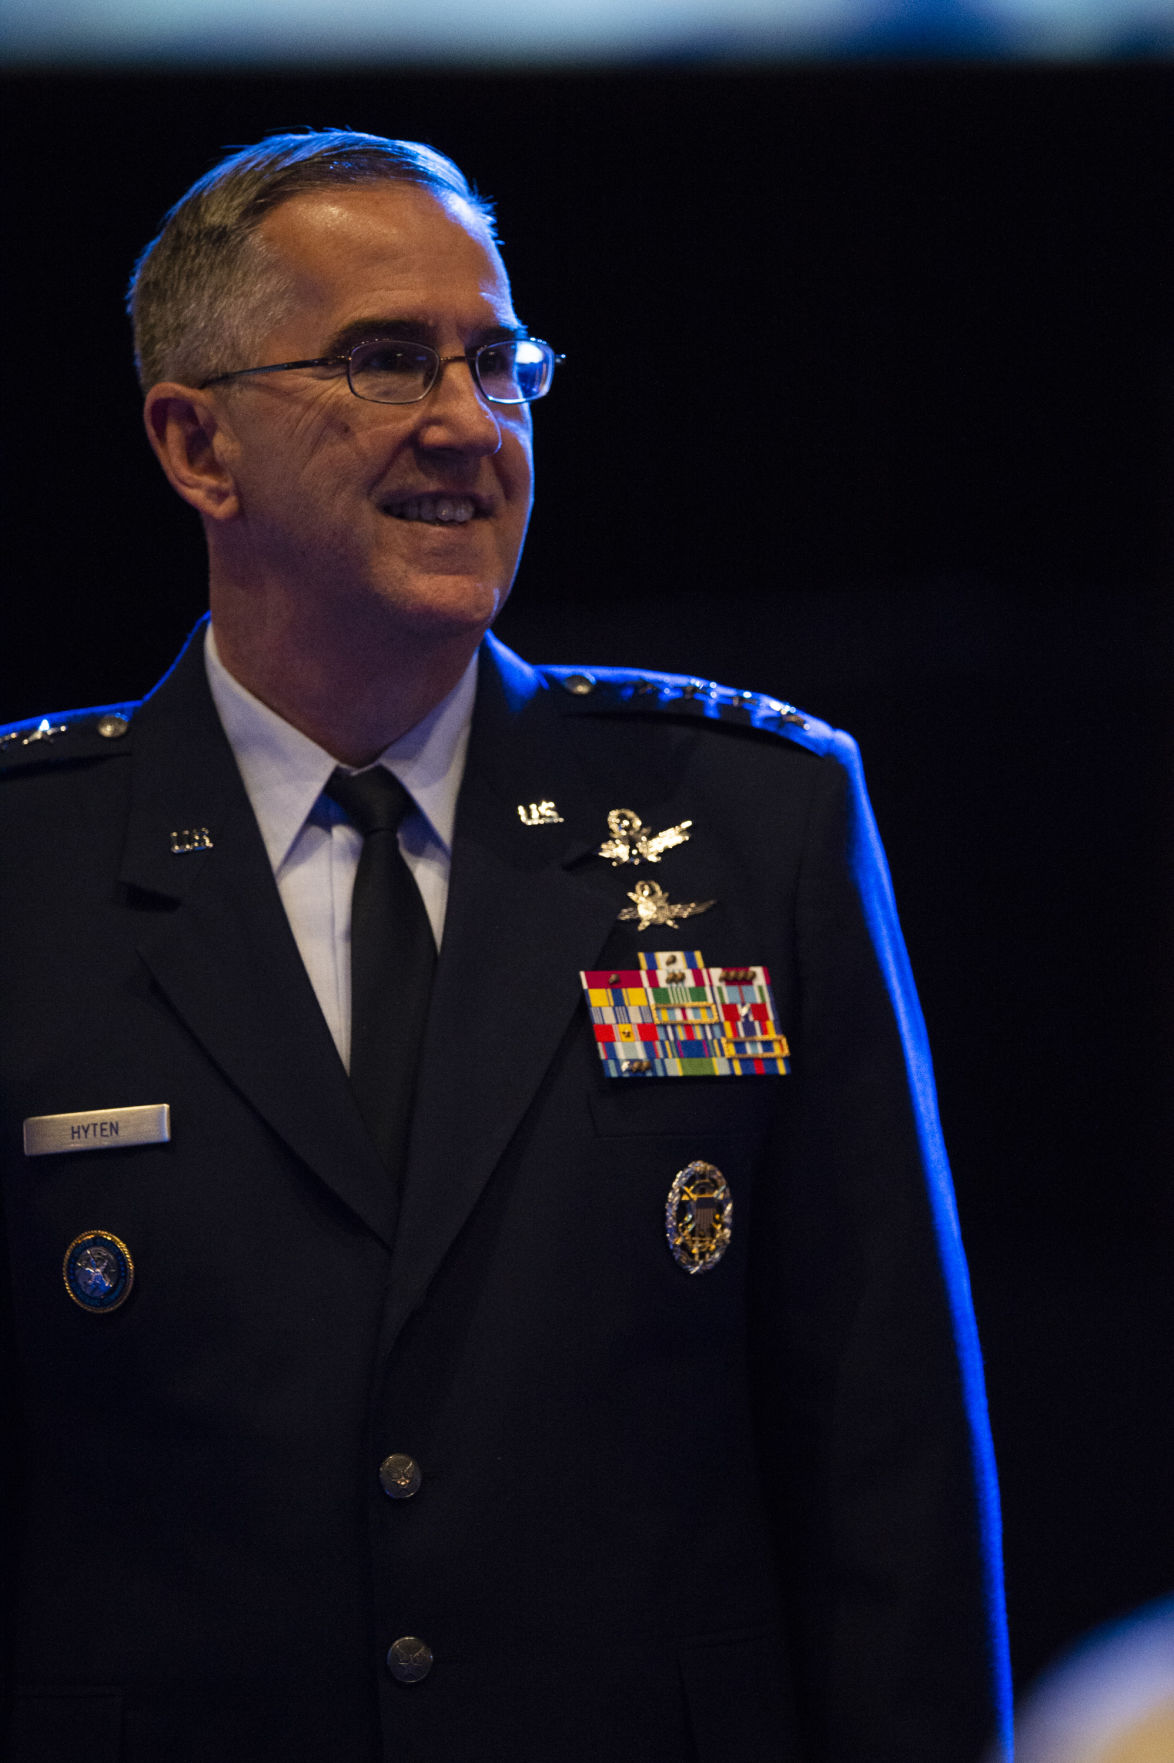 Commander of U.S. Strategic Command in Omaha Gen. John Hyten waits for Vice President Michael Pence to give opening remarks in the International Center at the 34th Space Symposium at the Broadmoor Hotel on Monday, April 16, 2018.  (Nadav Soroker, The Gazette)